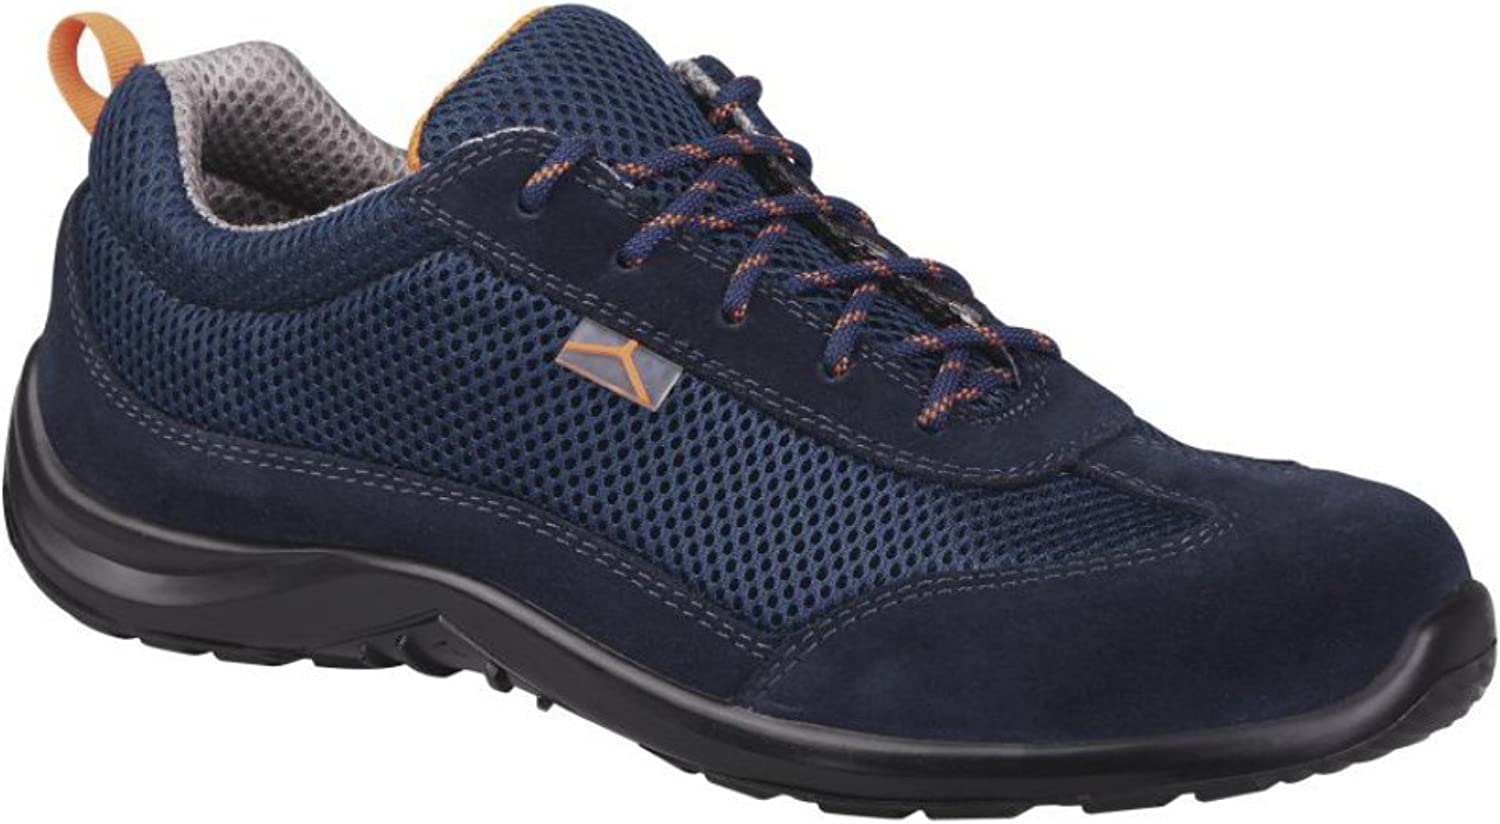 Delta Plus Como S1P SRC Mens Blue Suede Mesh Steel Toe Cap Safety Trainers Shoes